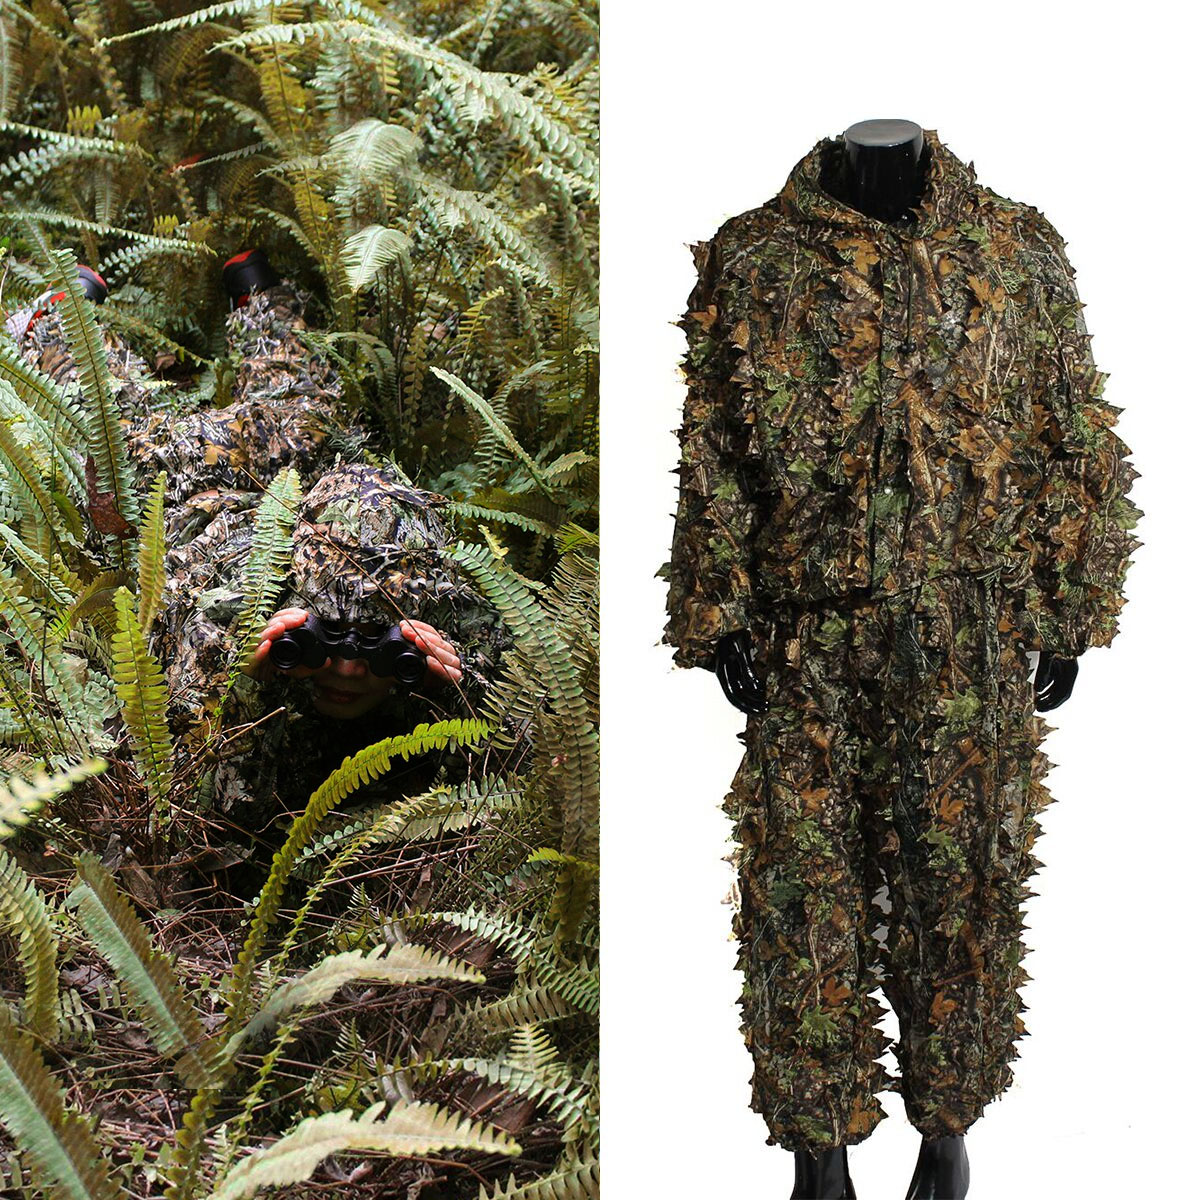 OUTERDO Ghillie Suit Camo Woodland Camouflage Clothing Forest Hunting Shooting Wildfowling Stalking Wildlife Photography Camo Jungle Suit Set